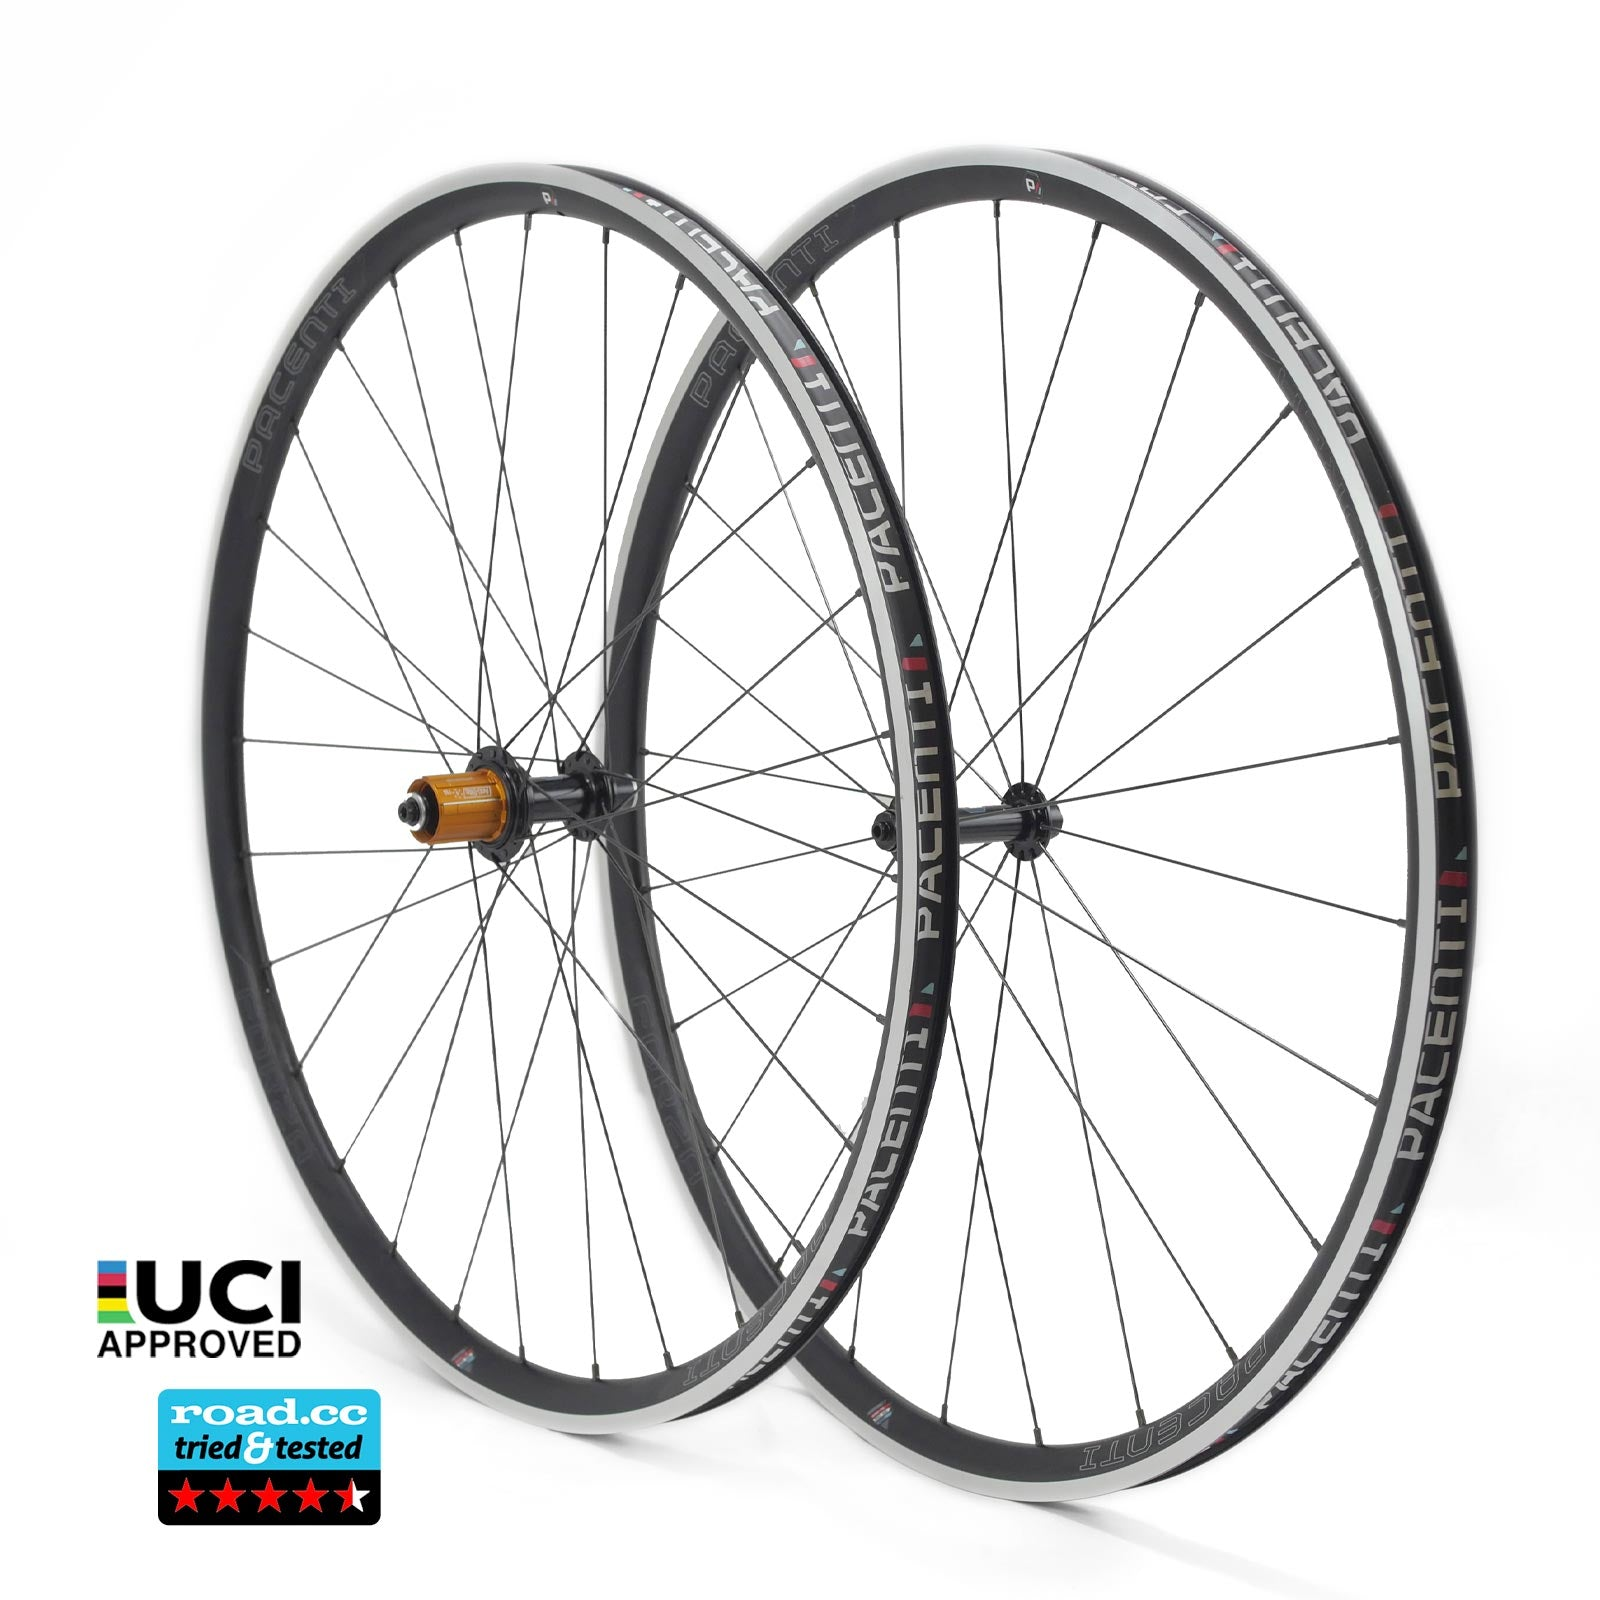 WINTER TRAINING BUNDLE - Forza wheelset rim brake (28h) with Schwalbe Durano Tyres, Tubes and Skewers